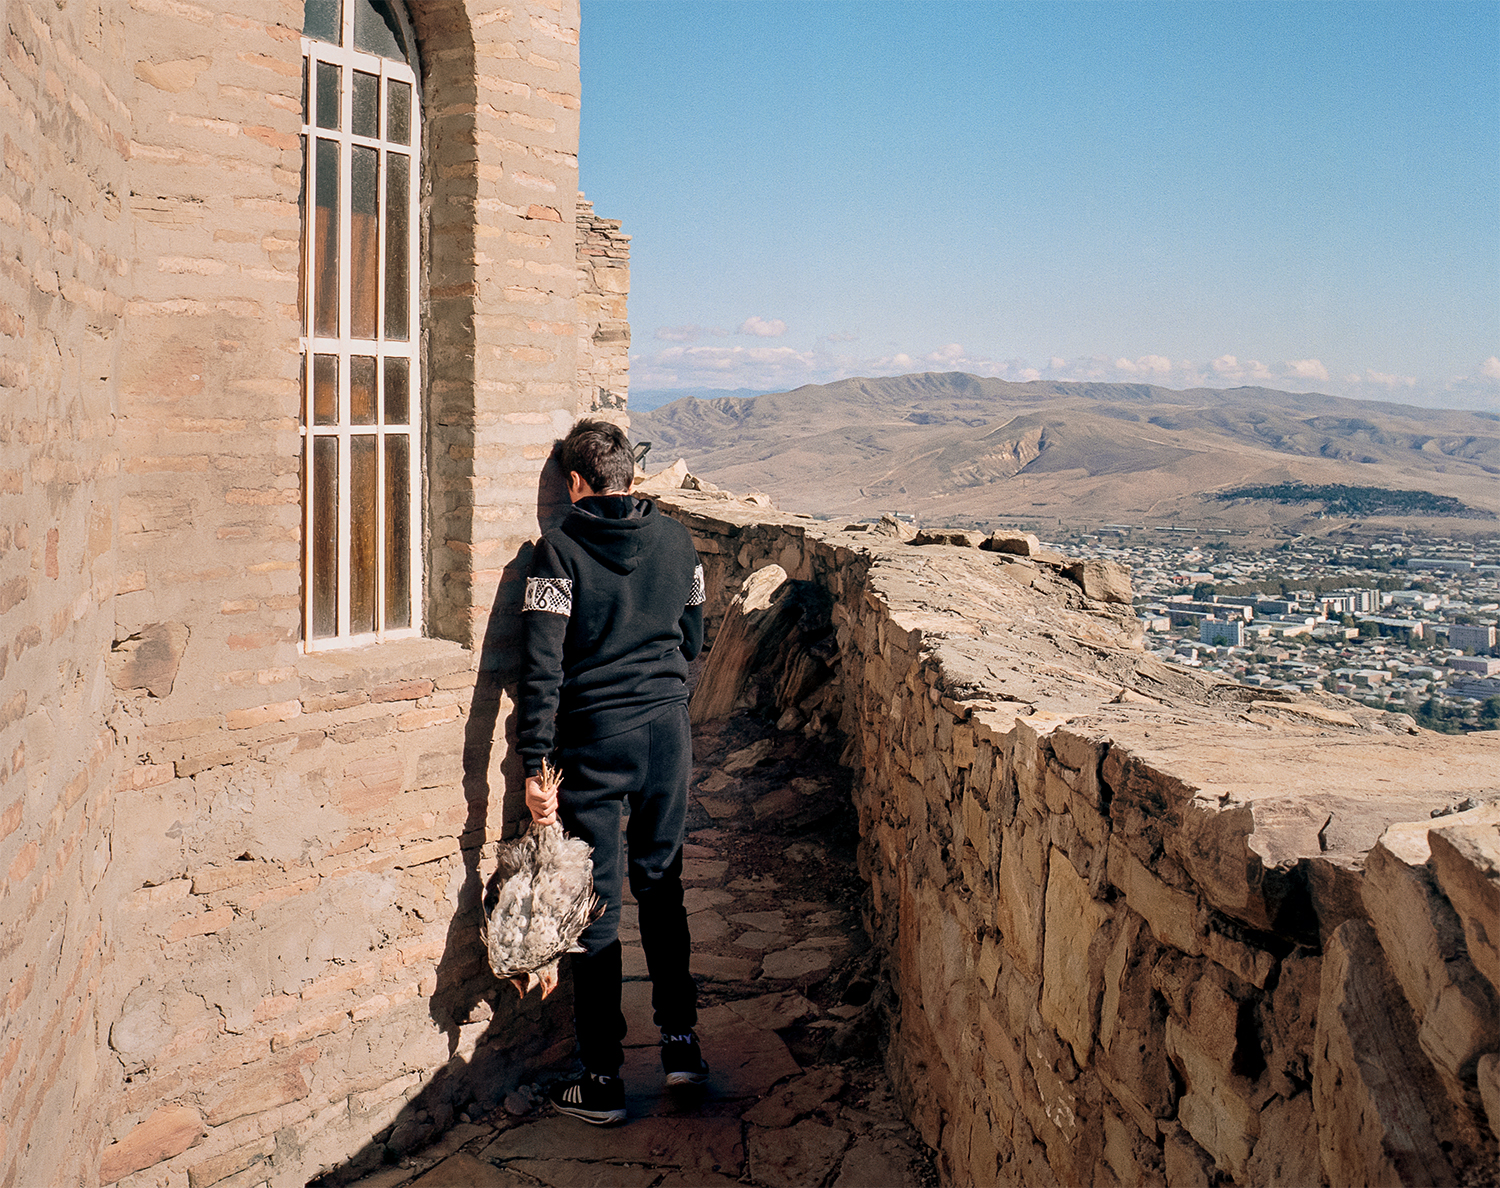 Steffen Junghanß The Invisible Border man stands facing wall overlooking town and mountains